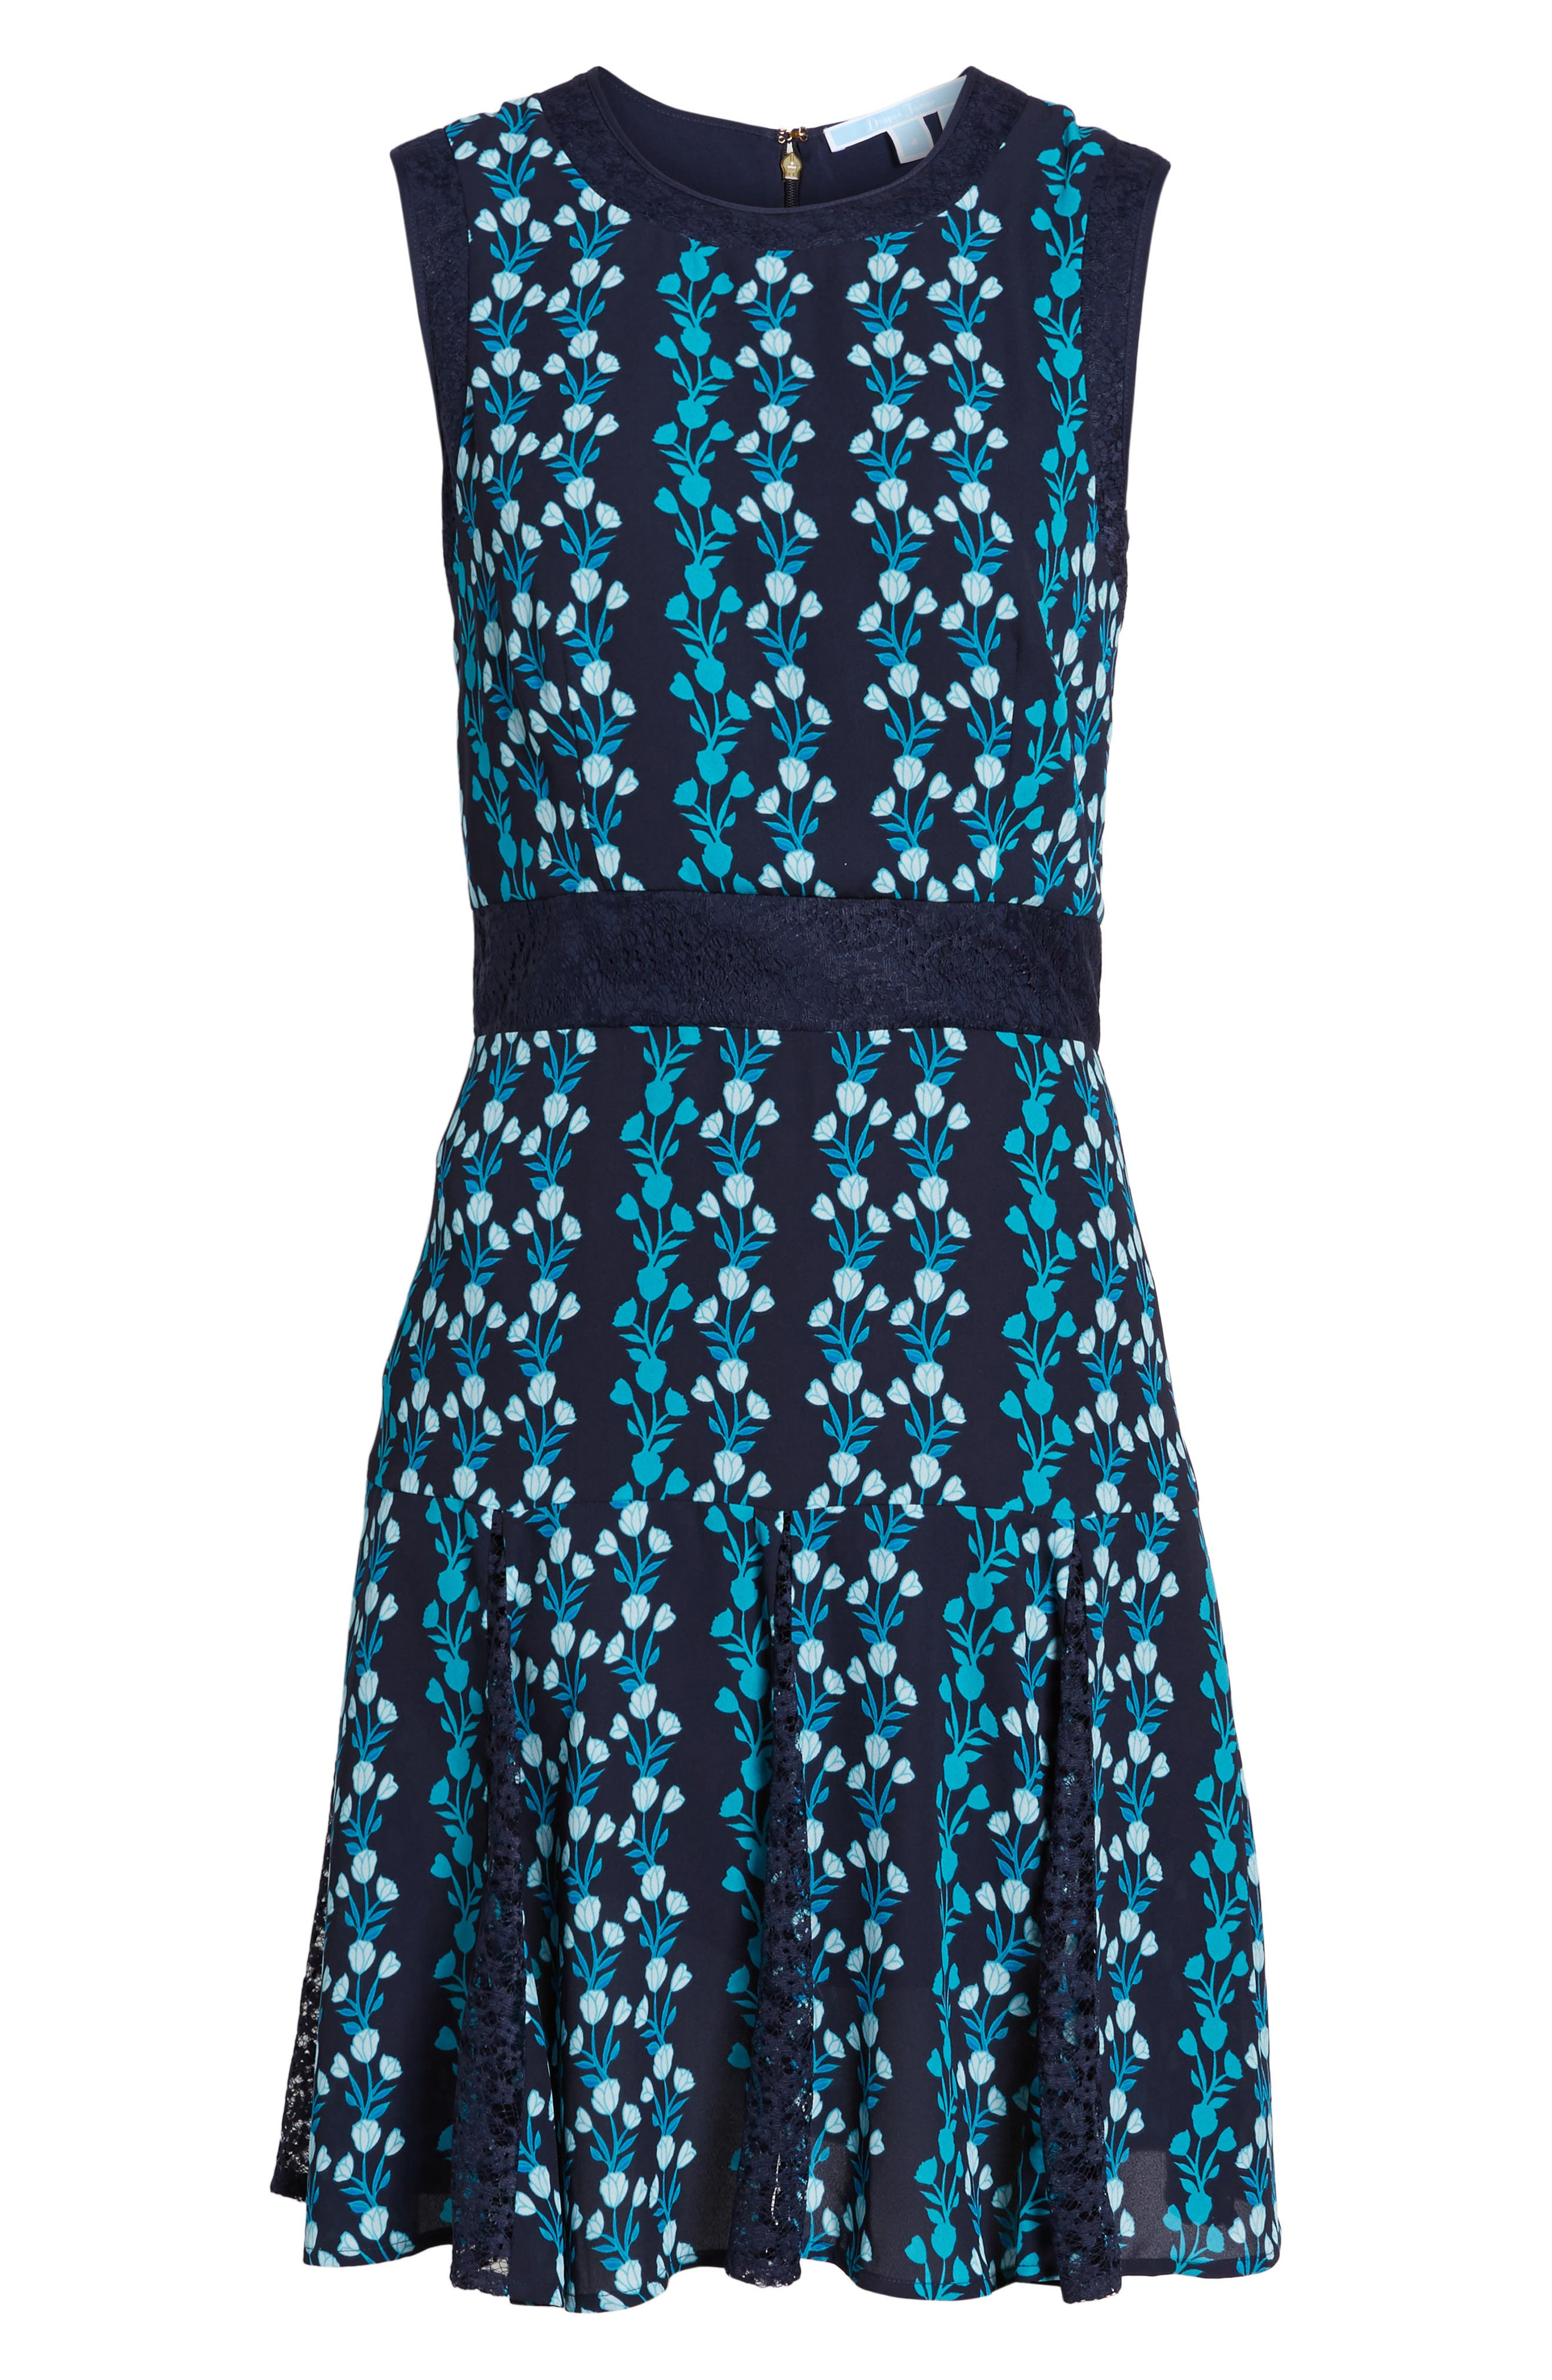 Meadow Vines Lace Dress,                             Alternate thumbnail 6, color,                             Nassau Navy Multi